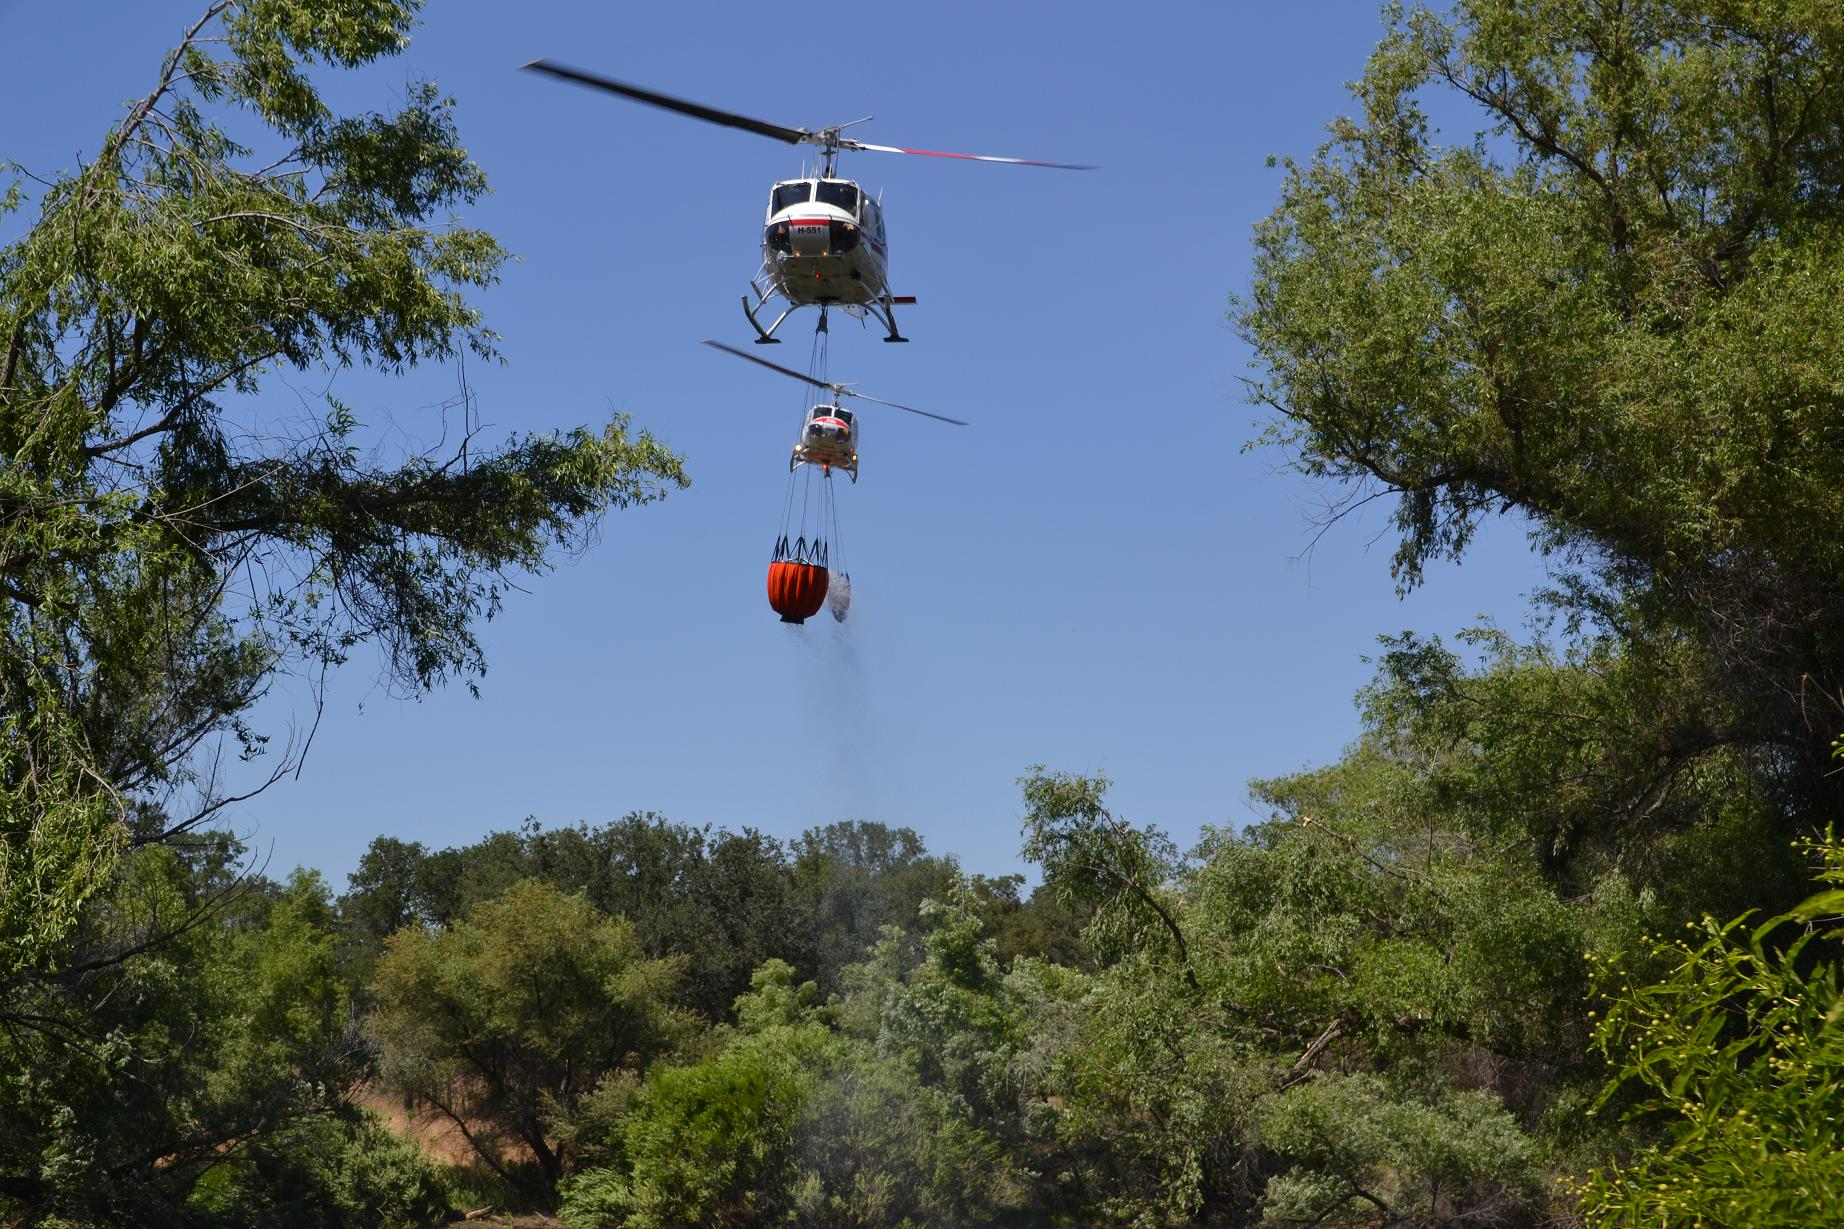 Helicopters H-551 and Cal Fire 404 - photo by Gina Clugston